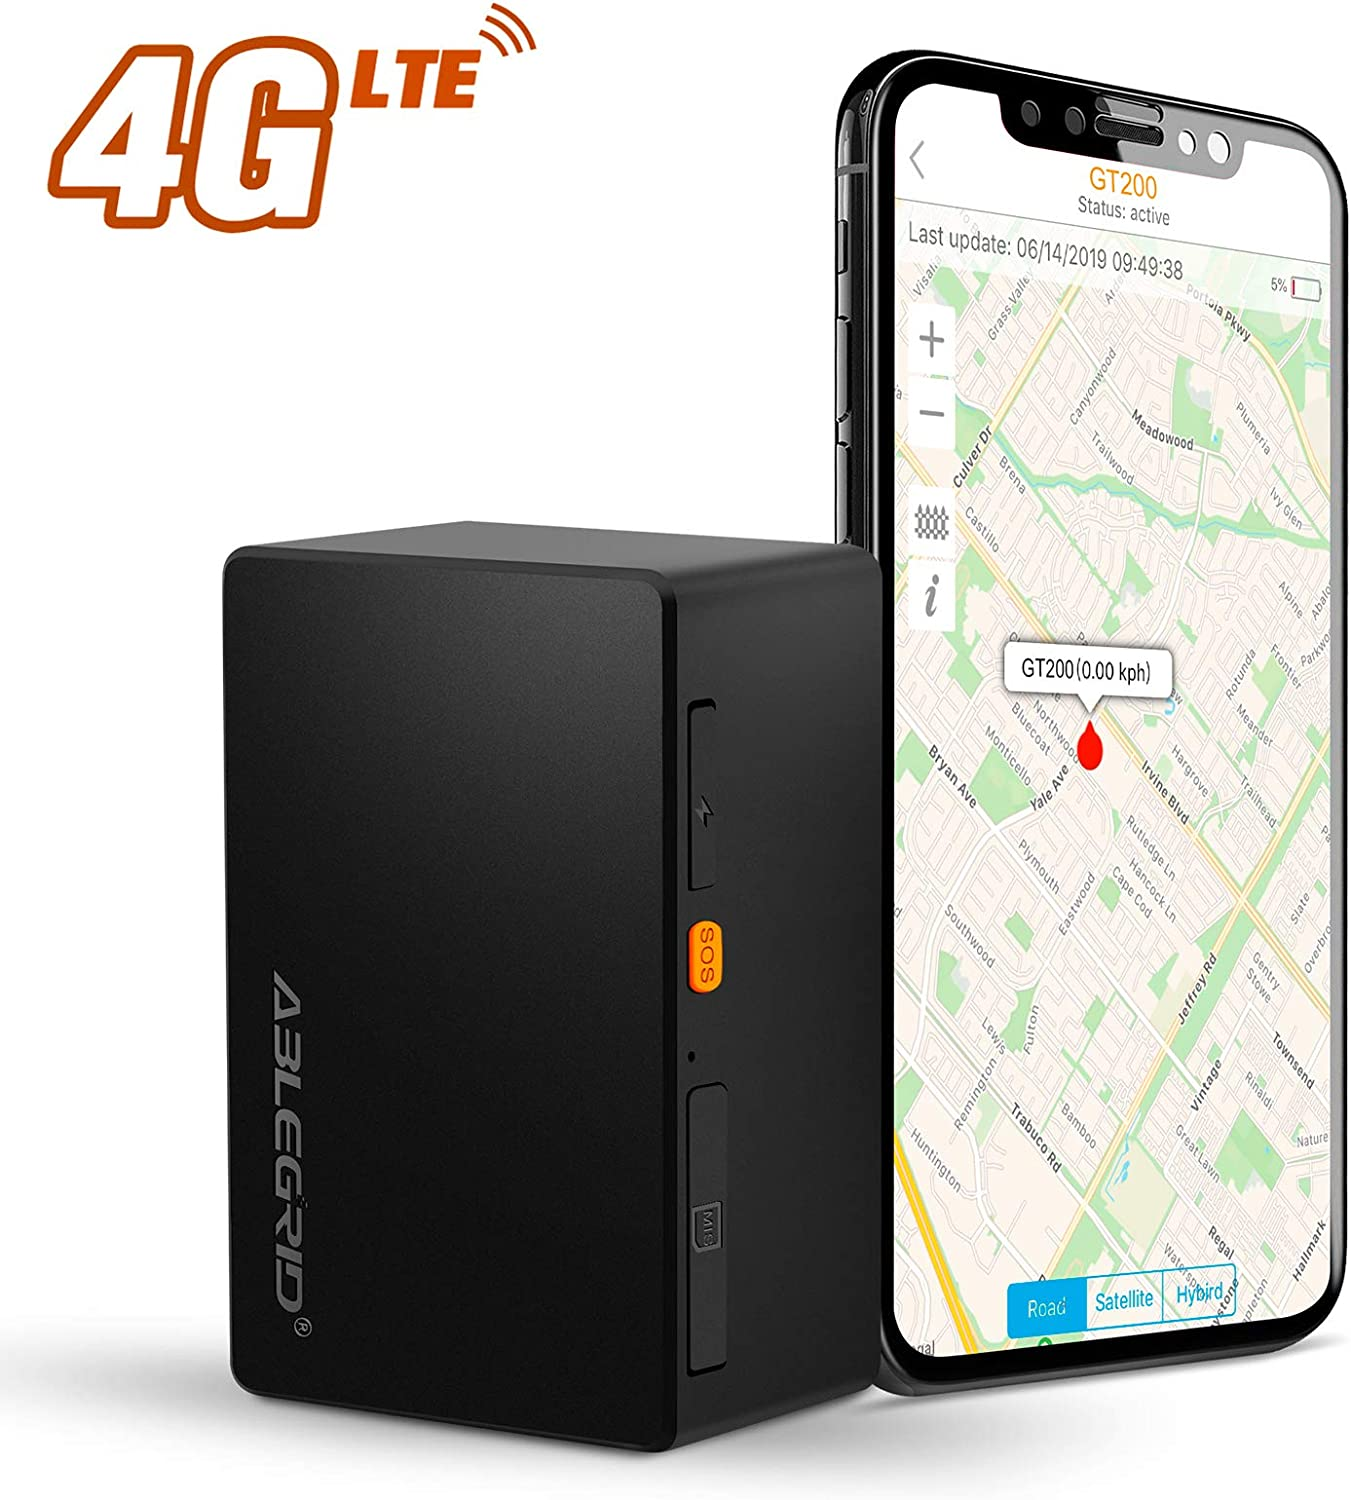 ABLEGRID GPS Tracker for Vehicles, 6800mAh-30 Days 4G LTE Real-time GPS Tracking Device for Vehicles and Persons Portable Hidden Magnetic Mini GPS Locator Tracker for Cars - with Global SIM Card